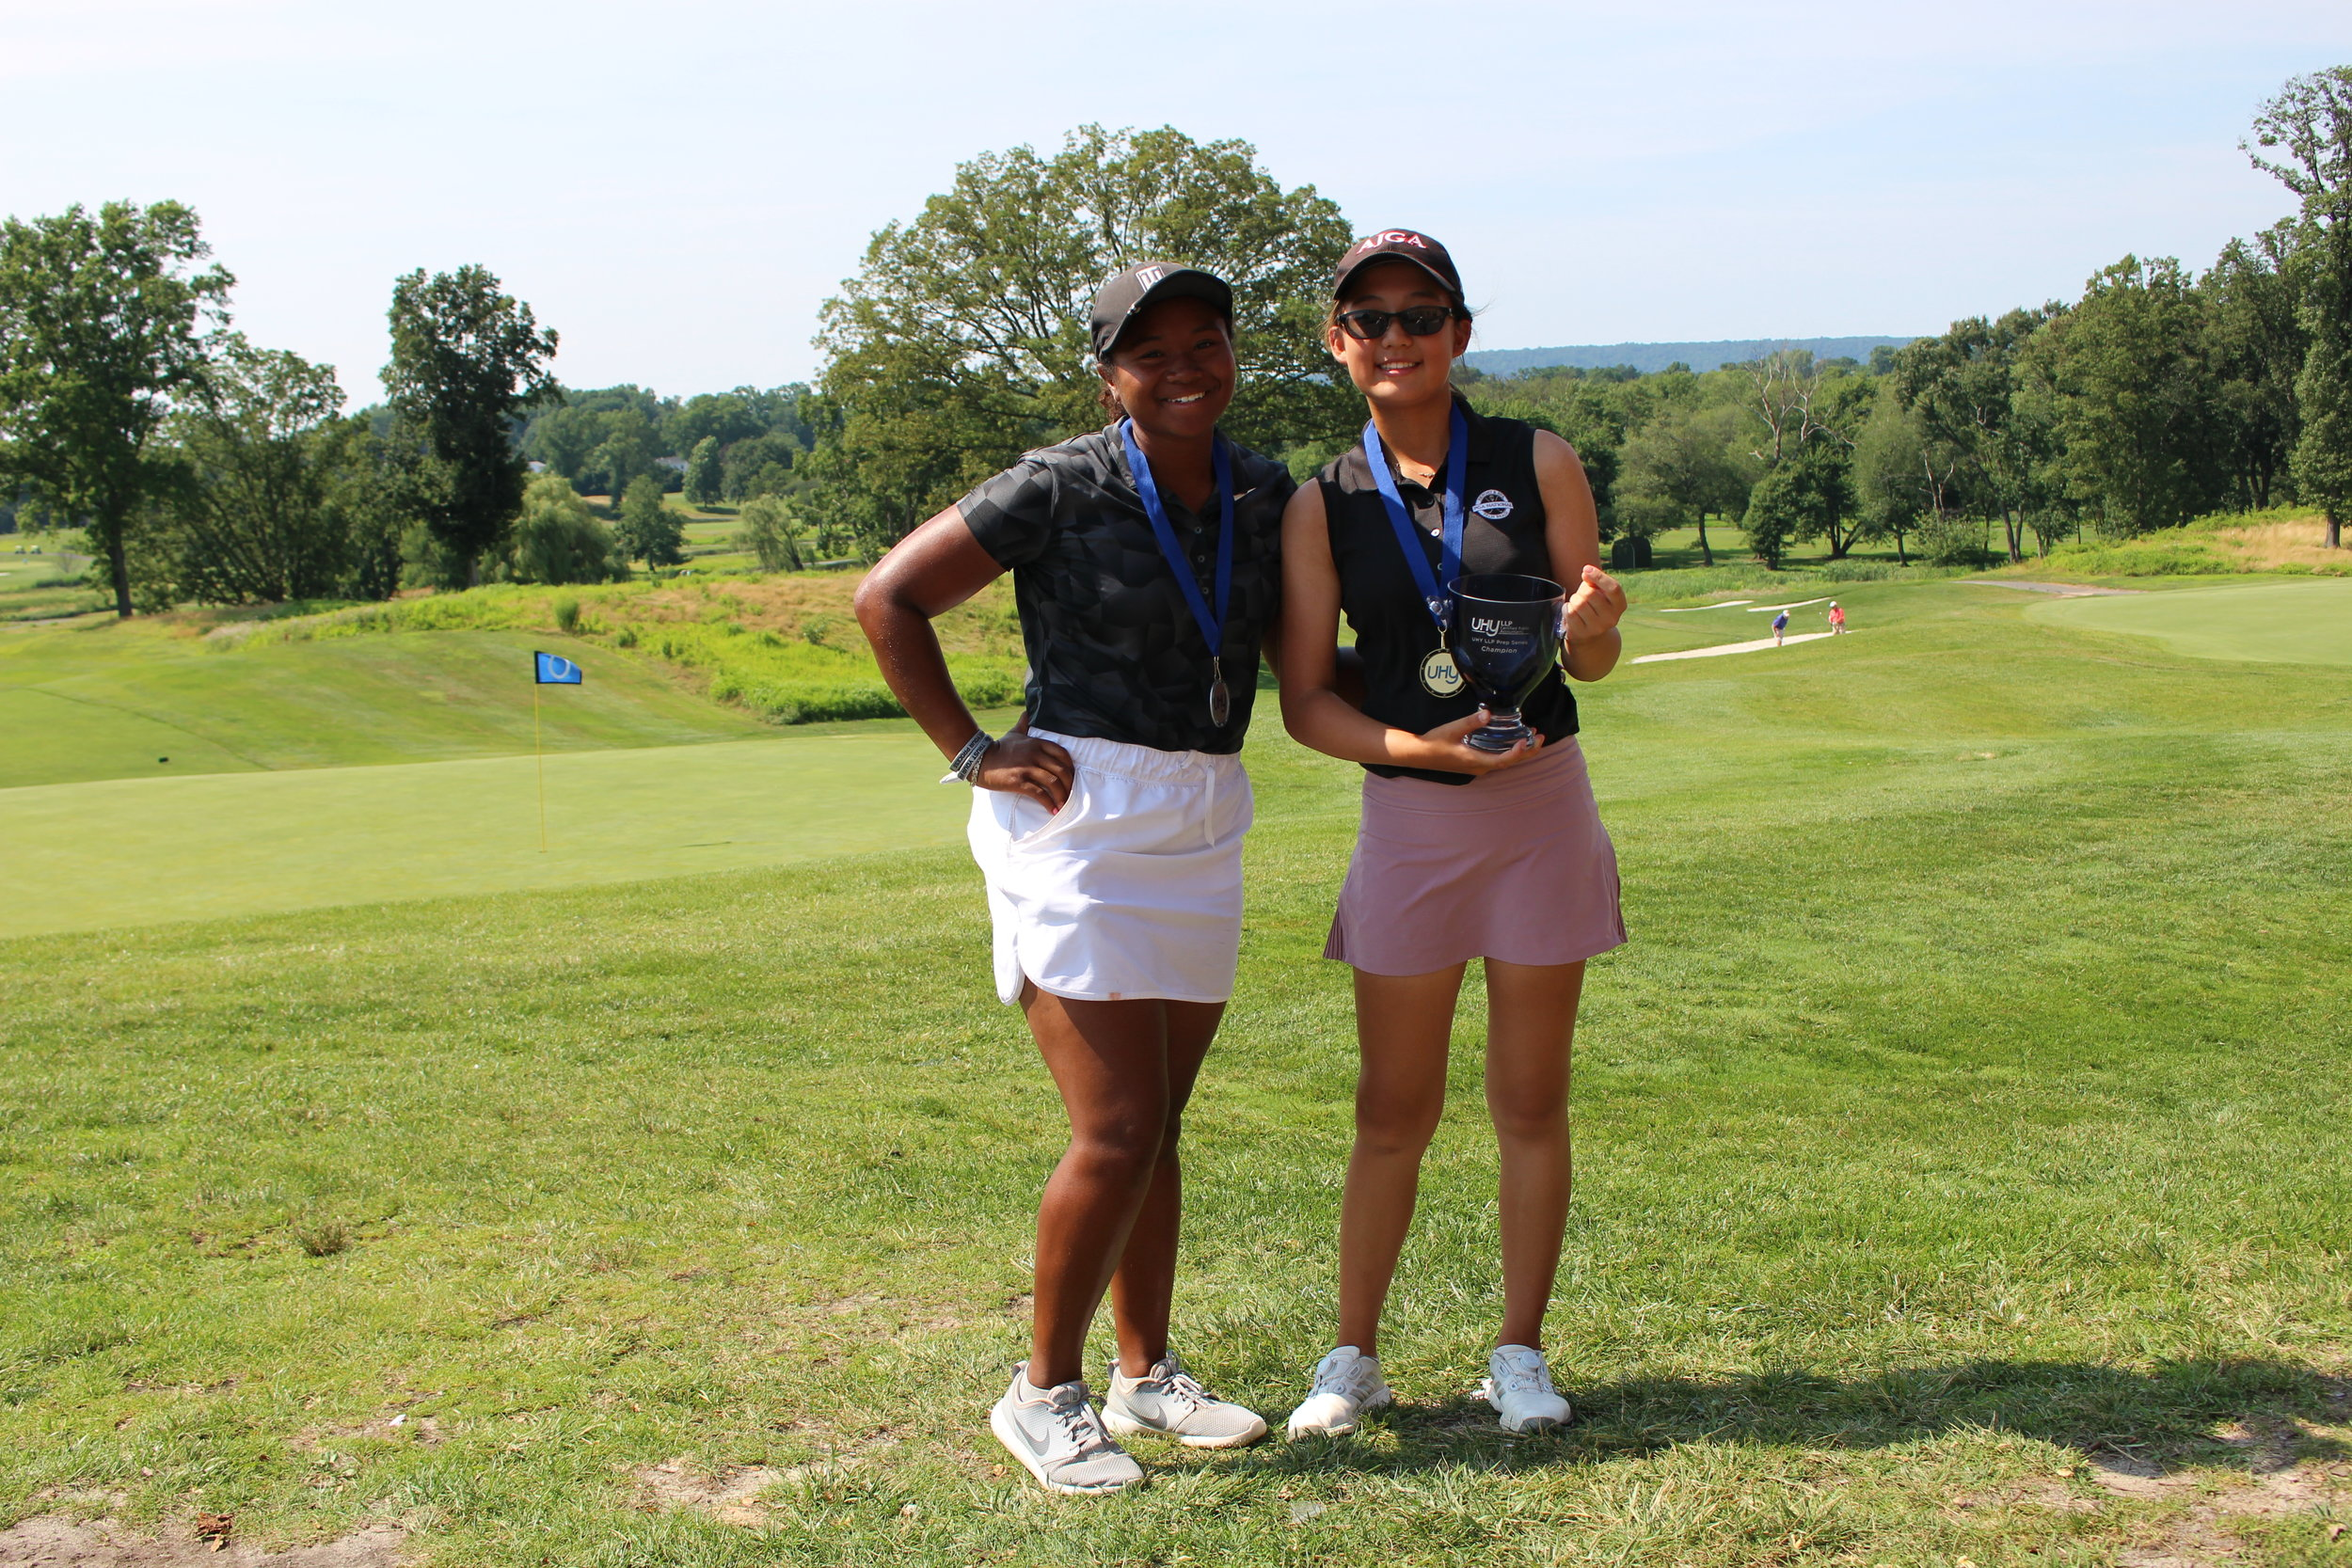 Angelina Kim from Tenafly, NJ was the girls champion, with a 156 total (80-76). Ray Lee from Springfield, VA was the runner-up, with a 163 total (78-85).